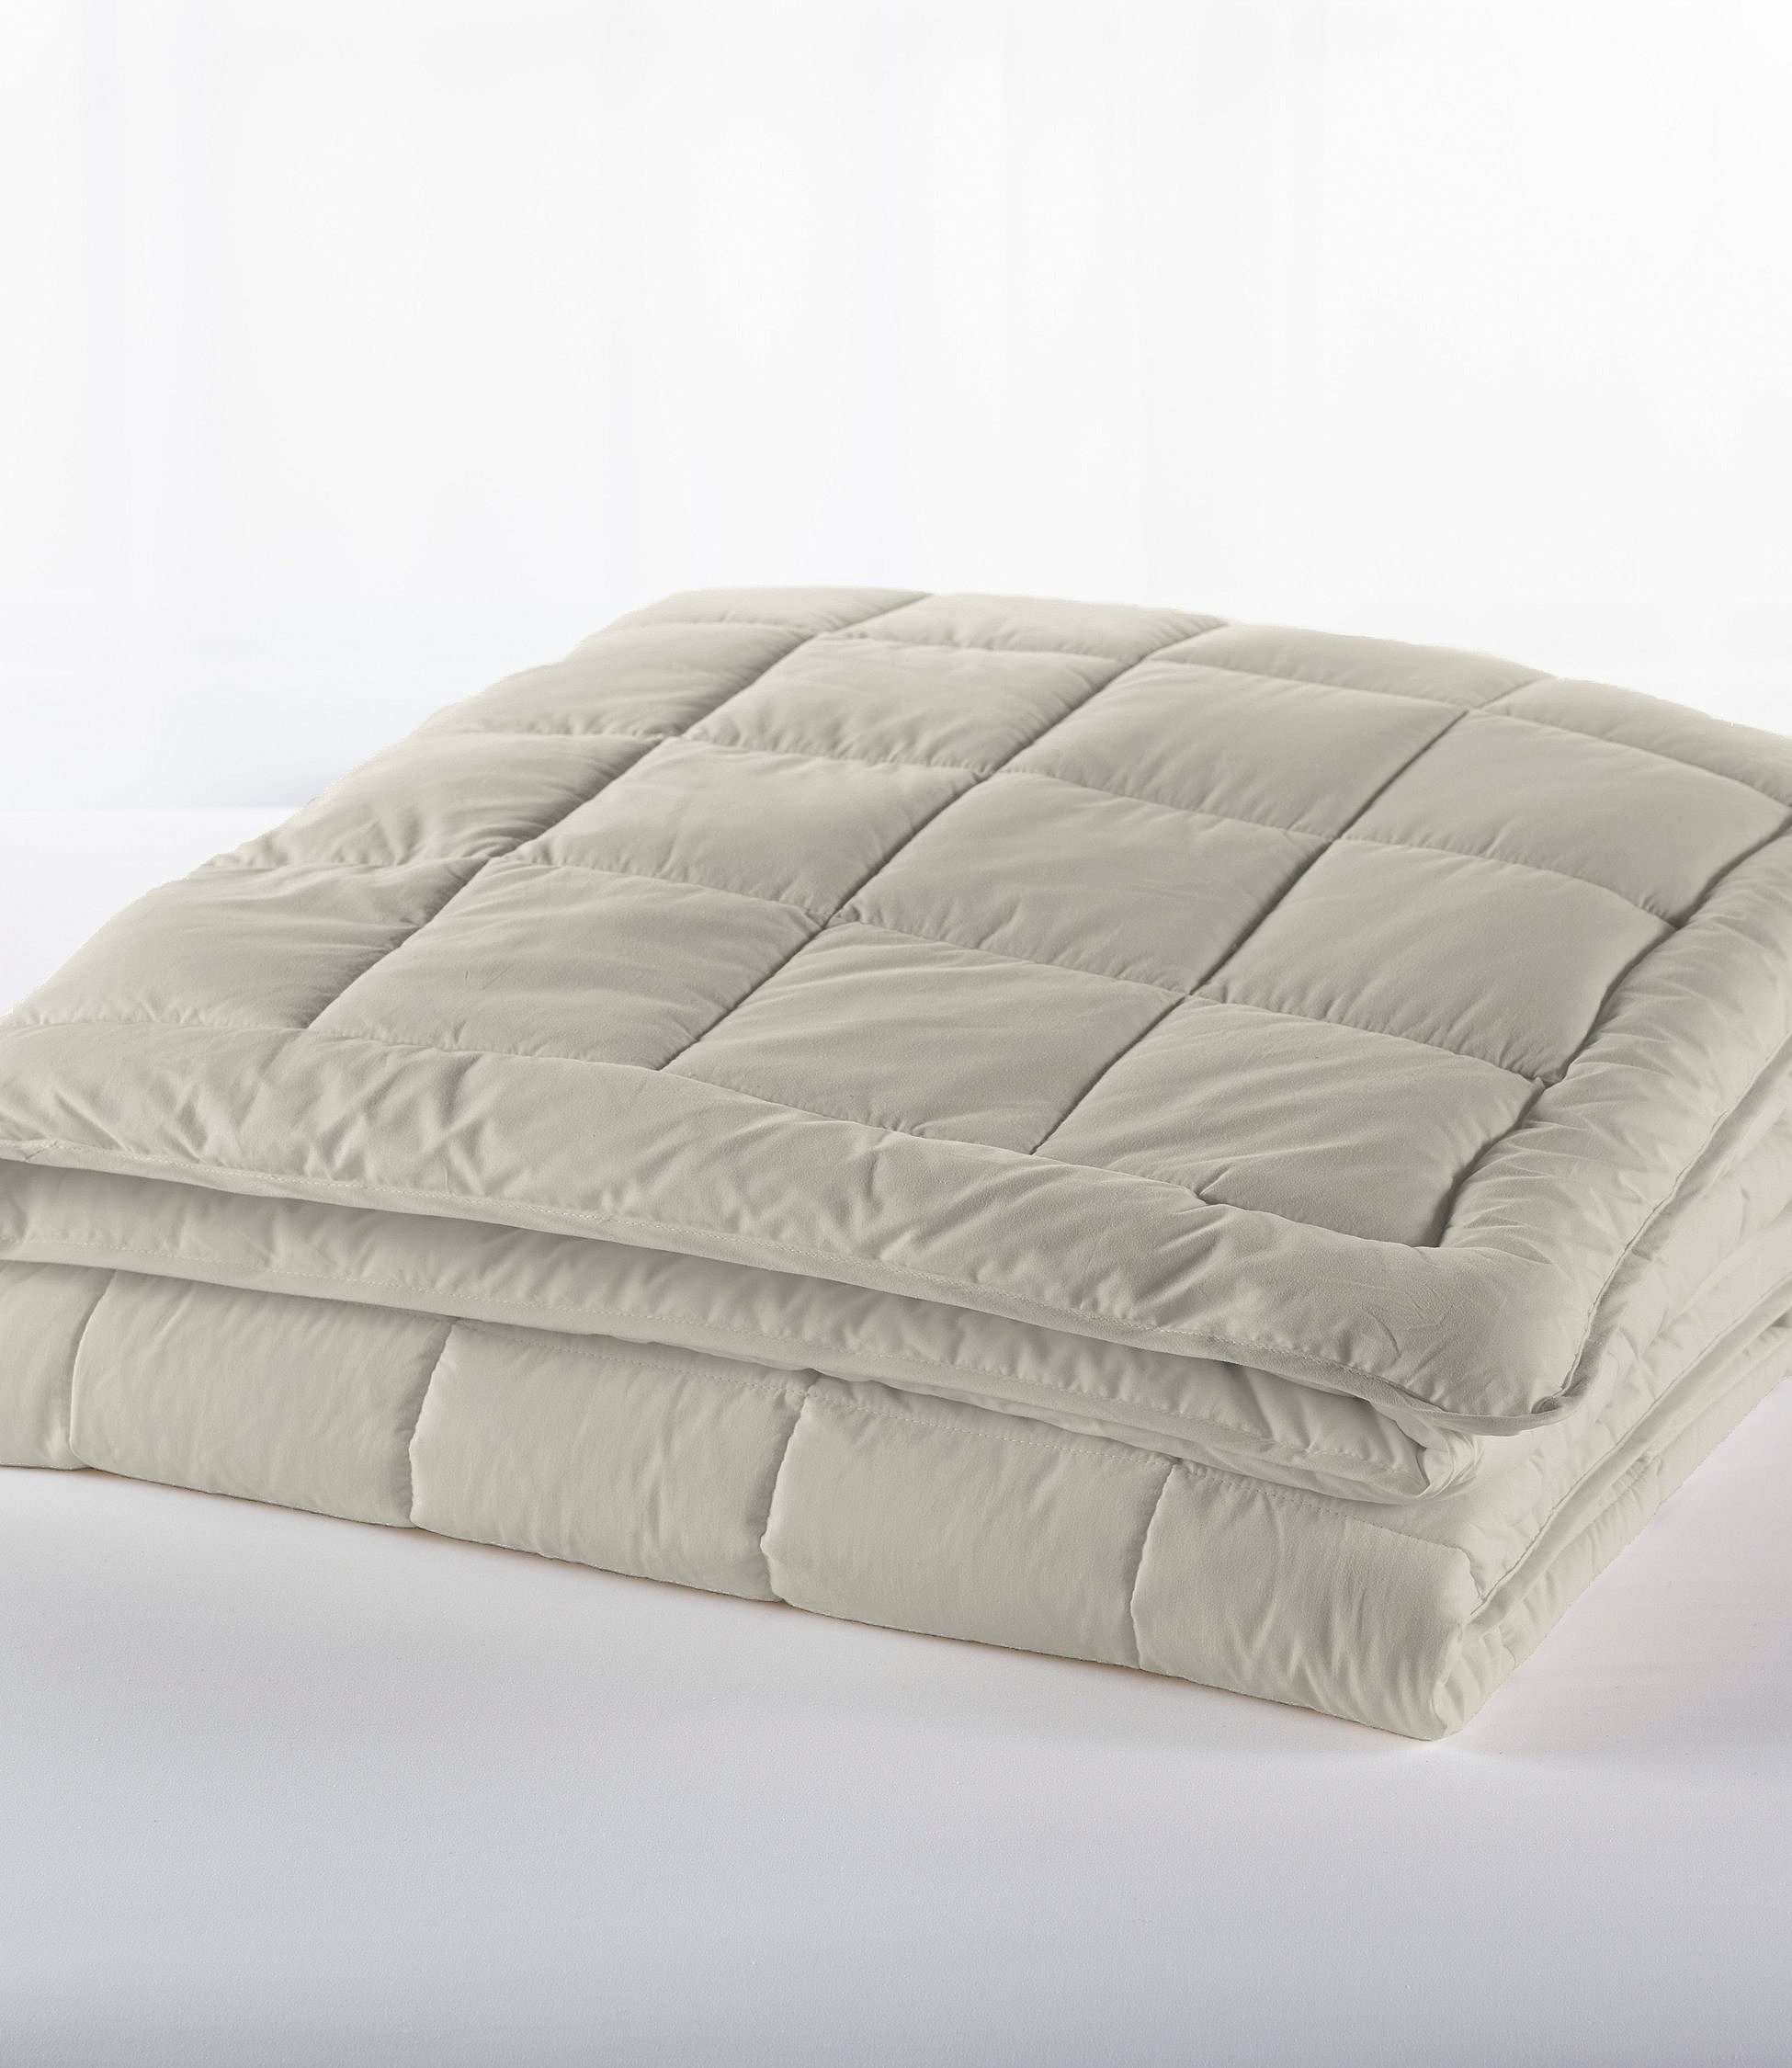 Ultrasoft Cotton Comforter | Free Shipping at L.L.Bean